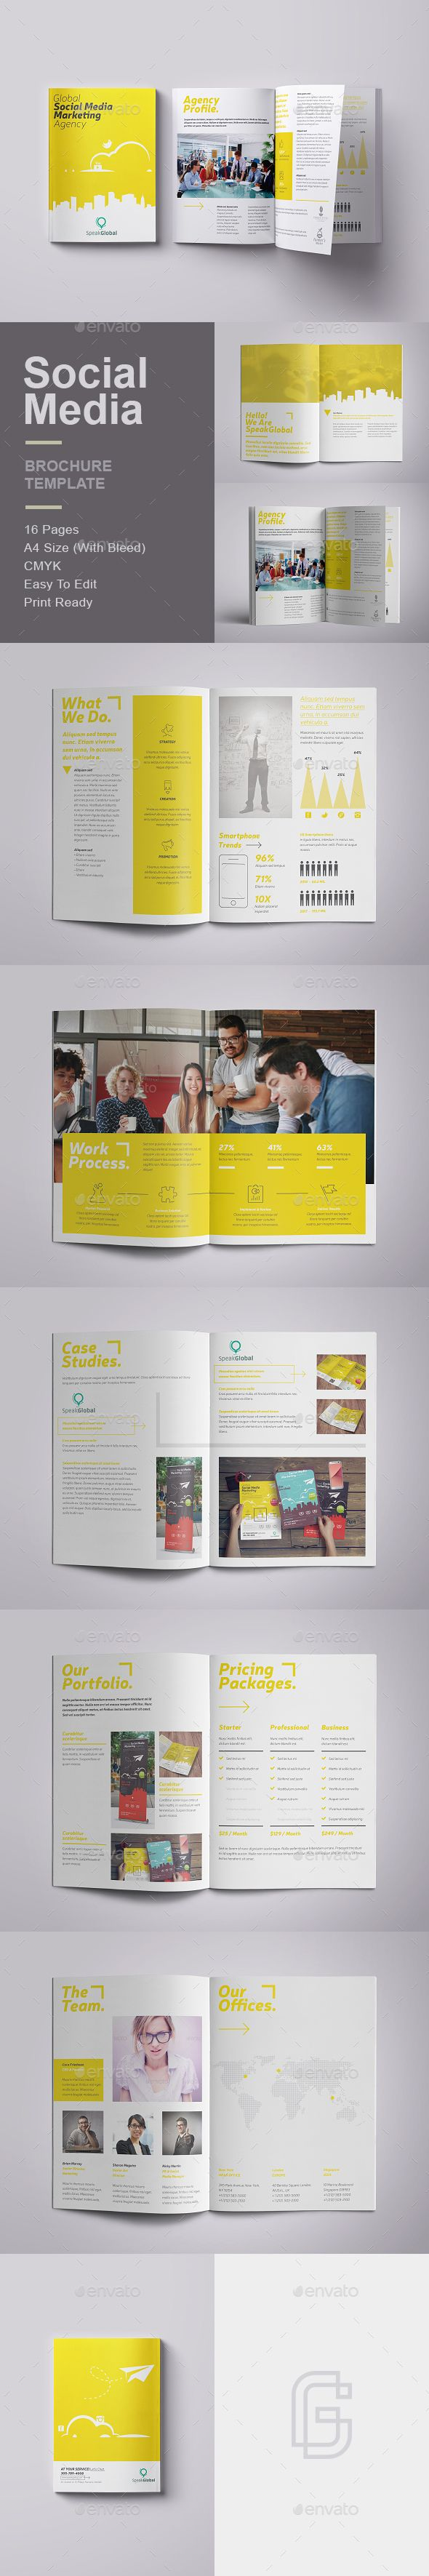 social media brochure - Booklet Design Ideas